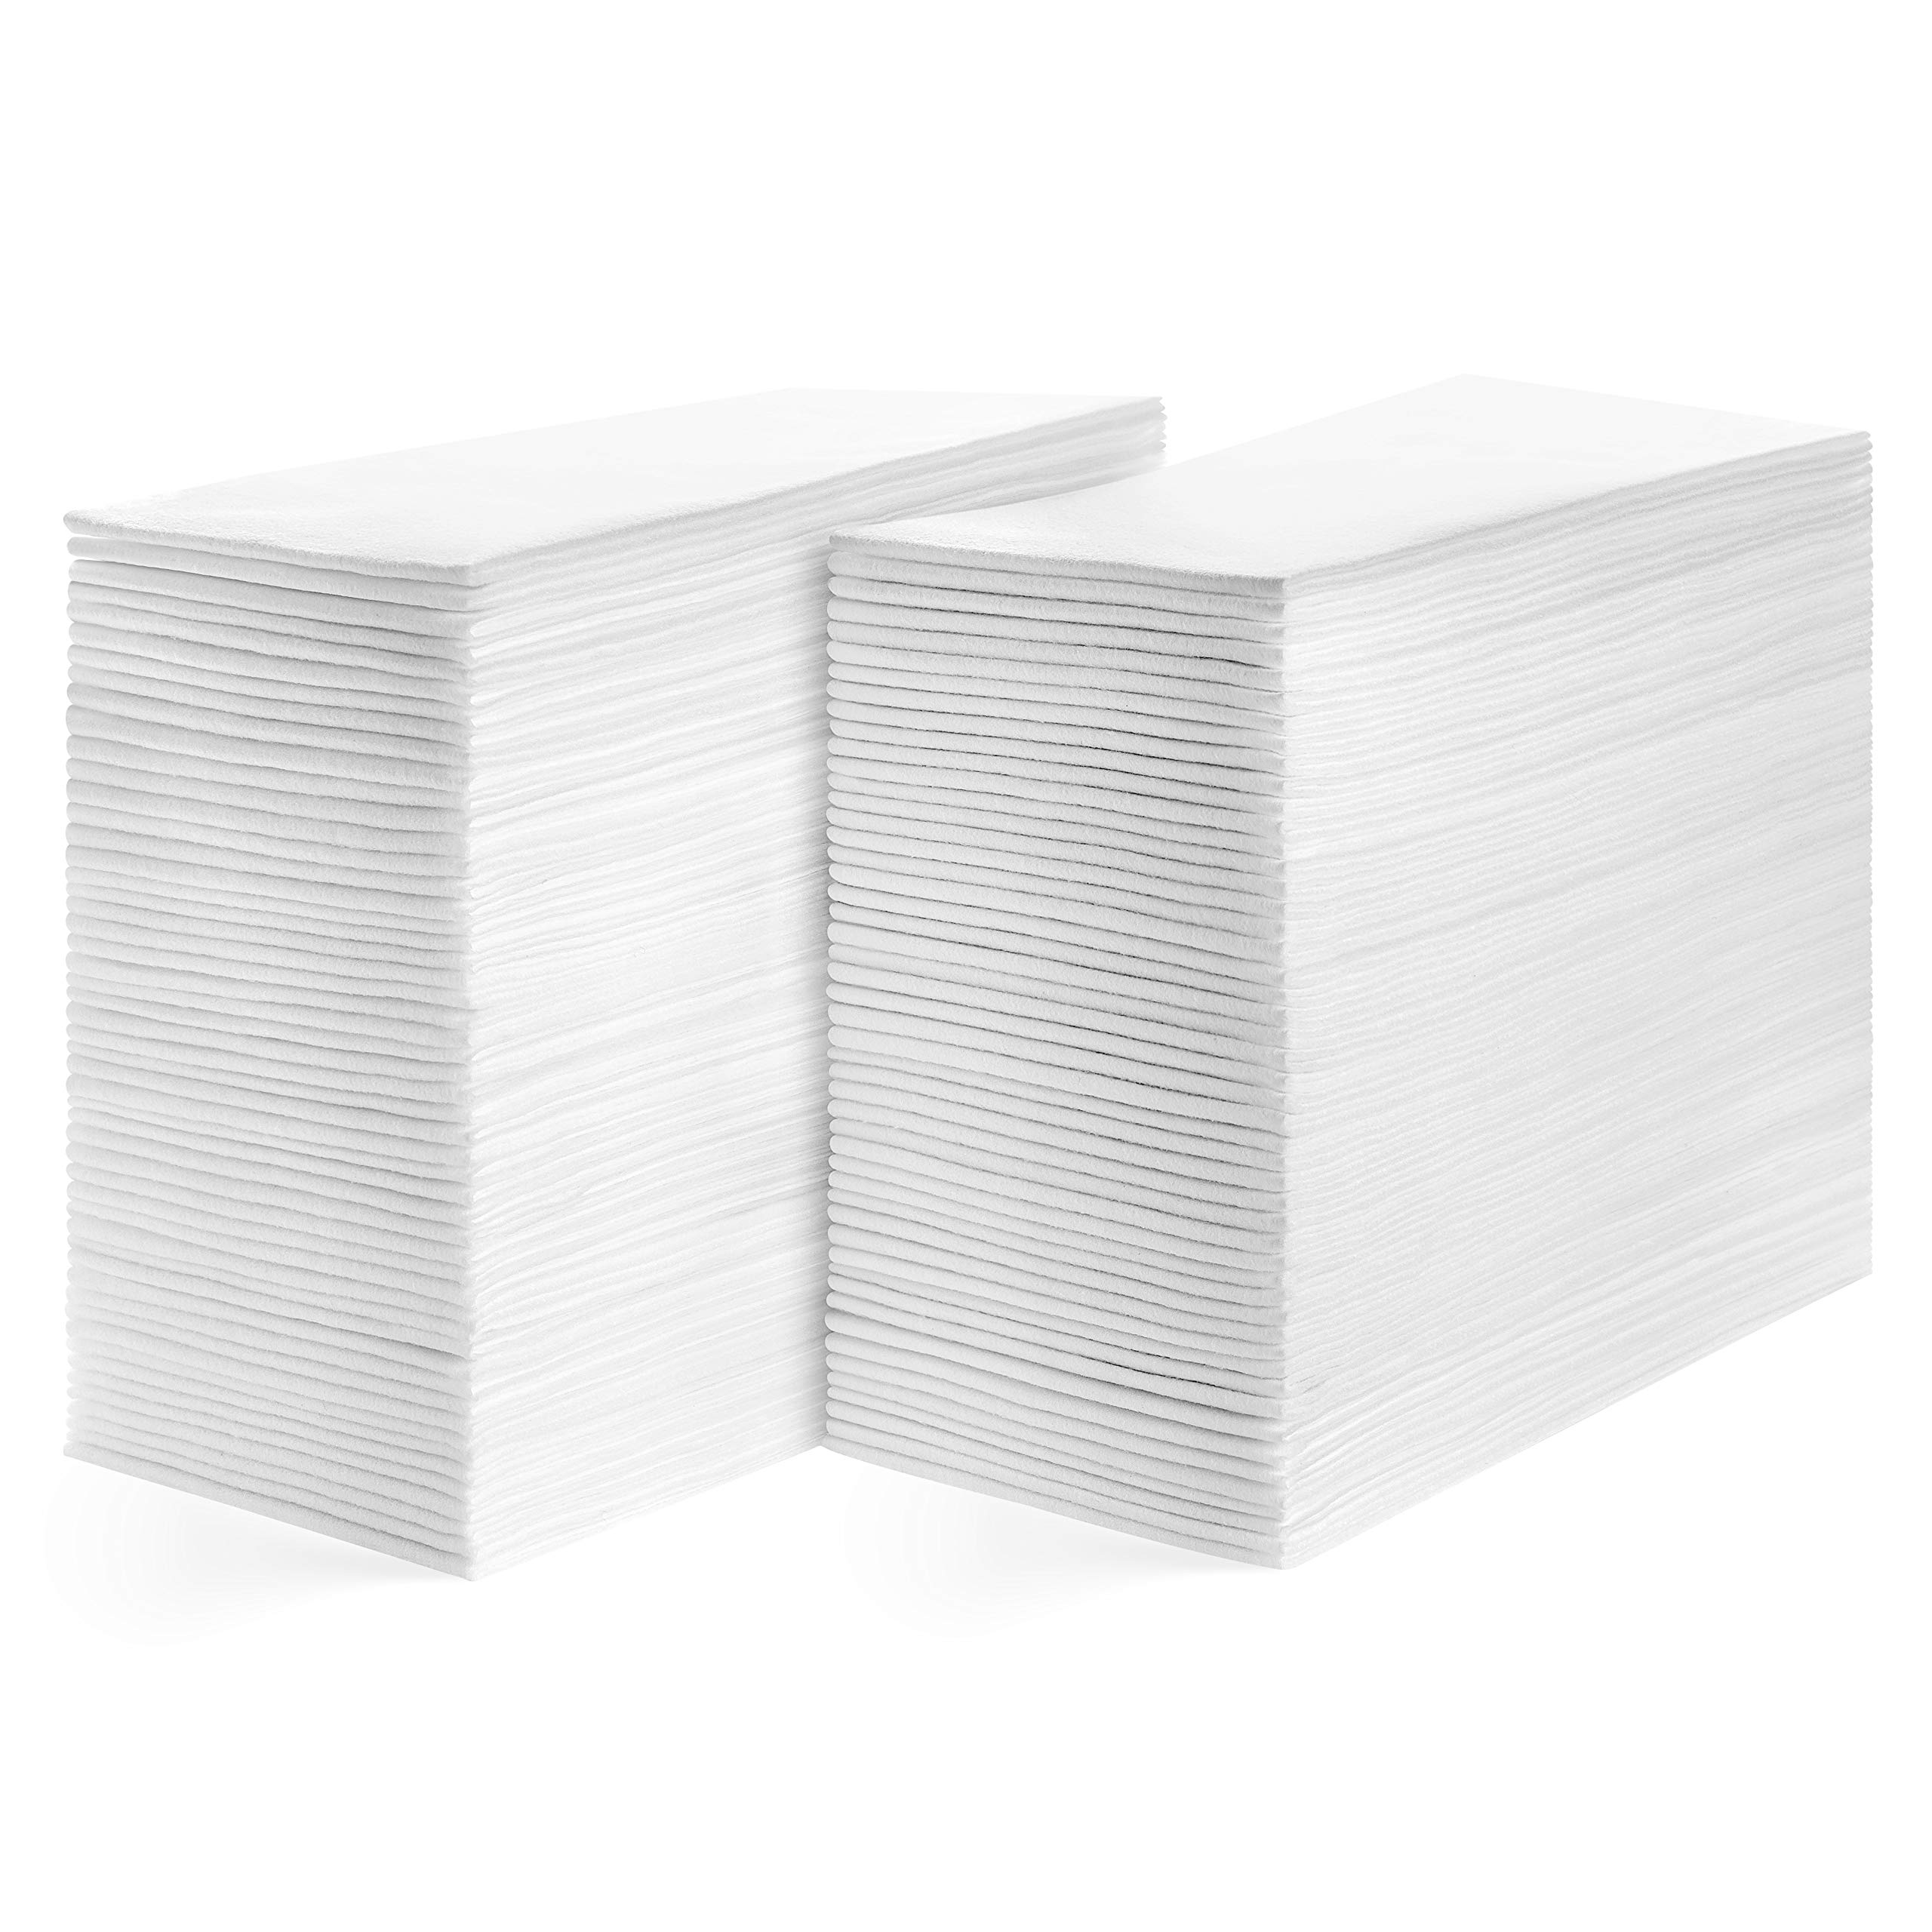 joytime Linen Feel Guest Disposable Cloth Like Napkins Soft, Absorbent, Paper Hand Towels for Kitchen, Bathroom, Parties, Weddings, Dinners Or Events White 200 Pack